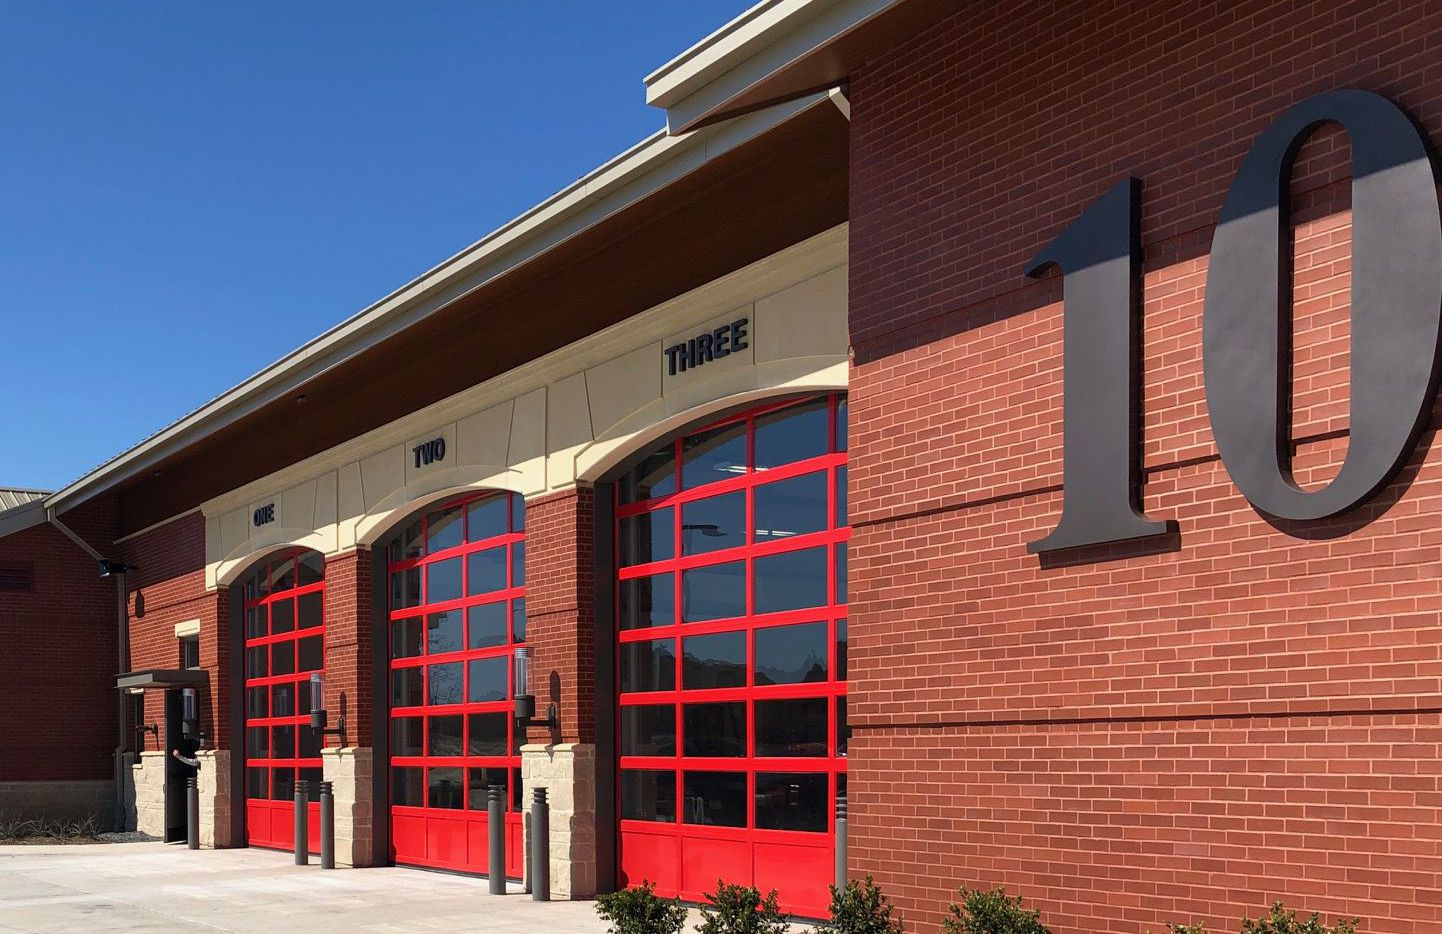 The McKinney Fire Department's Fire Station 10 opened Thursday, April 2, 2020. The new station at 1150 Olympic Crossing will serve the Trinity Falls area.